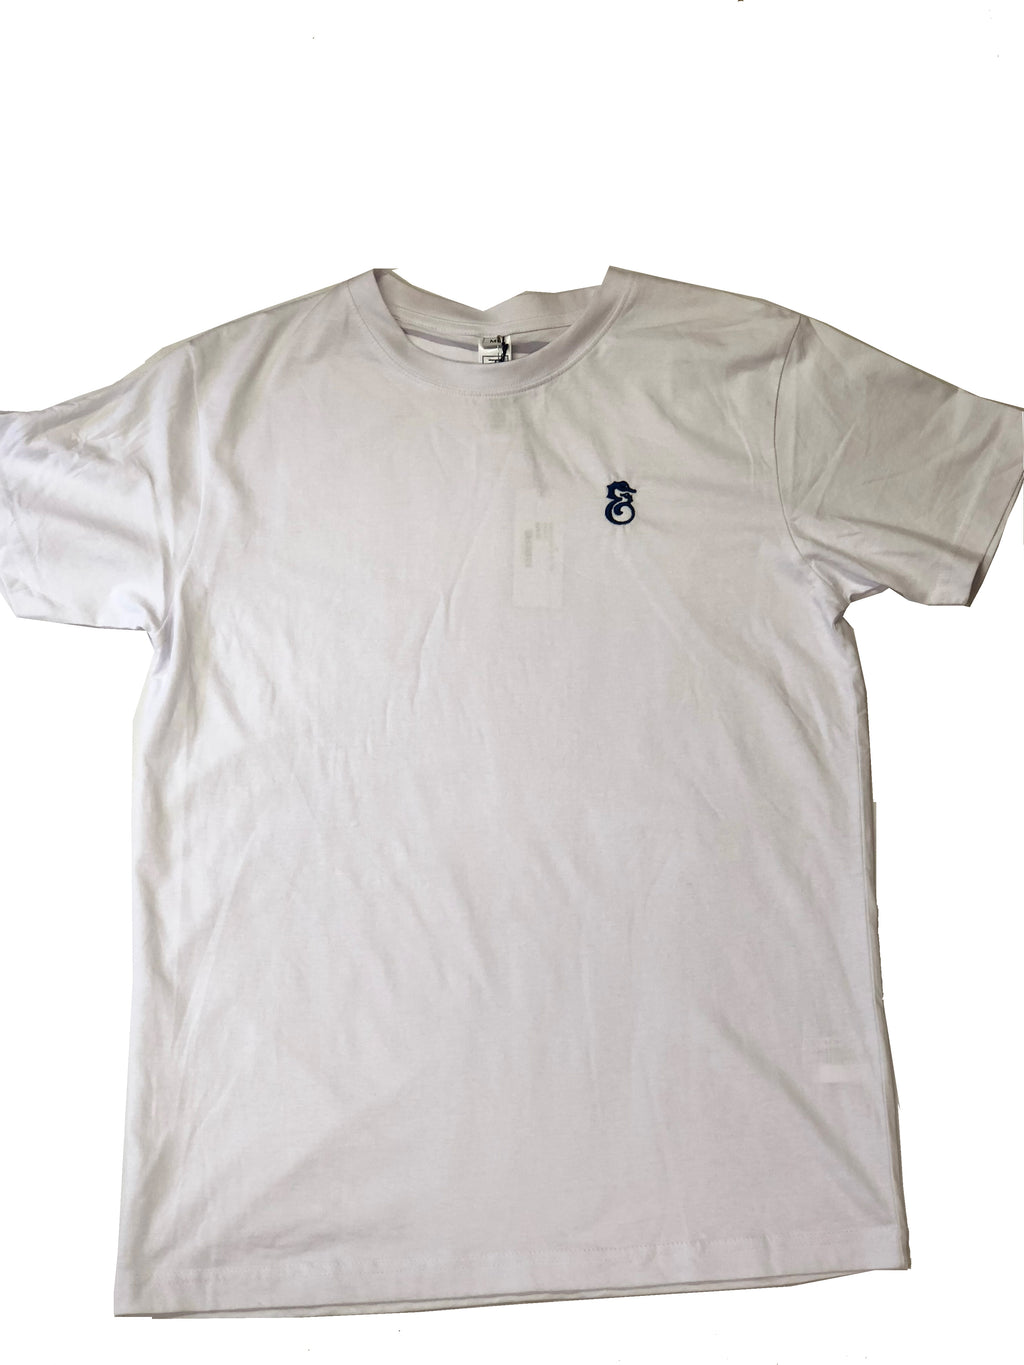 Robert & Son White Cotton T-Shirt